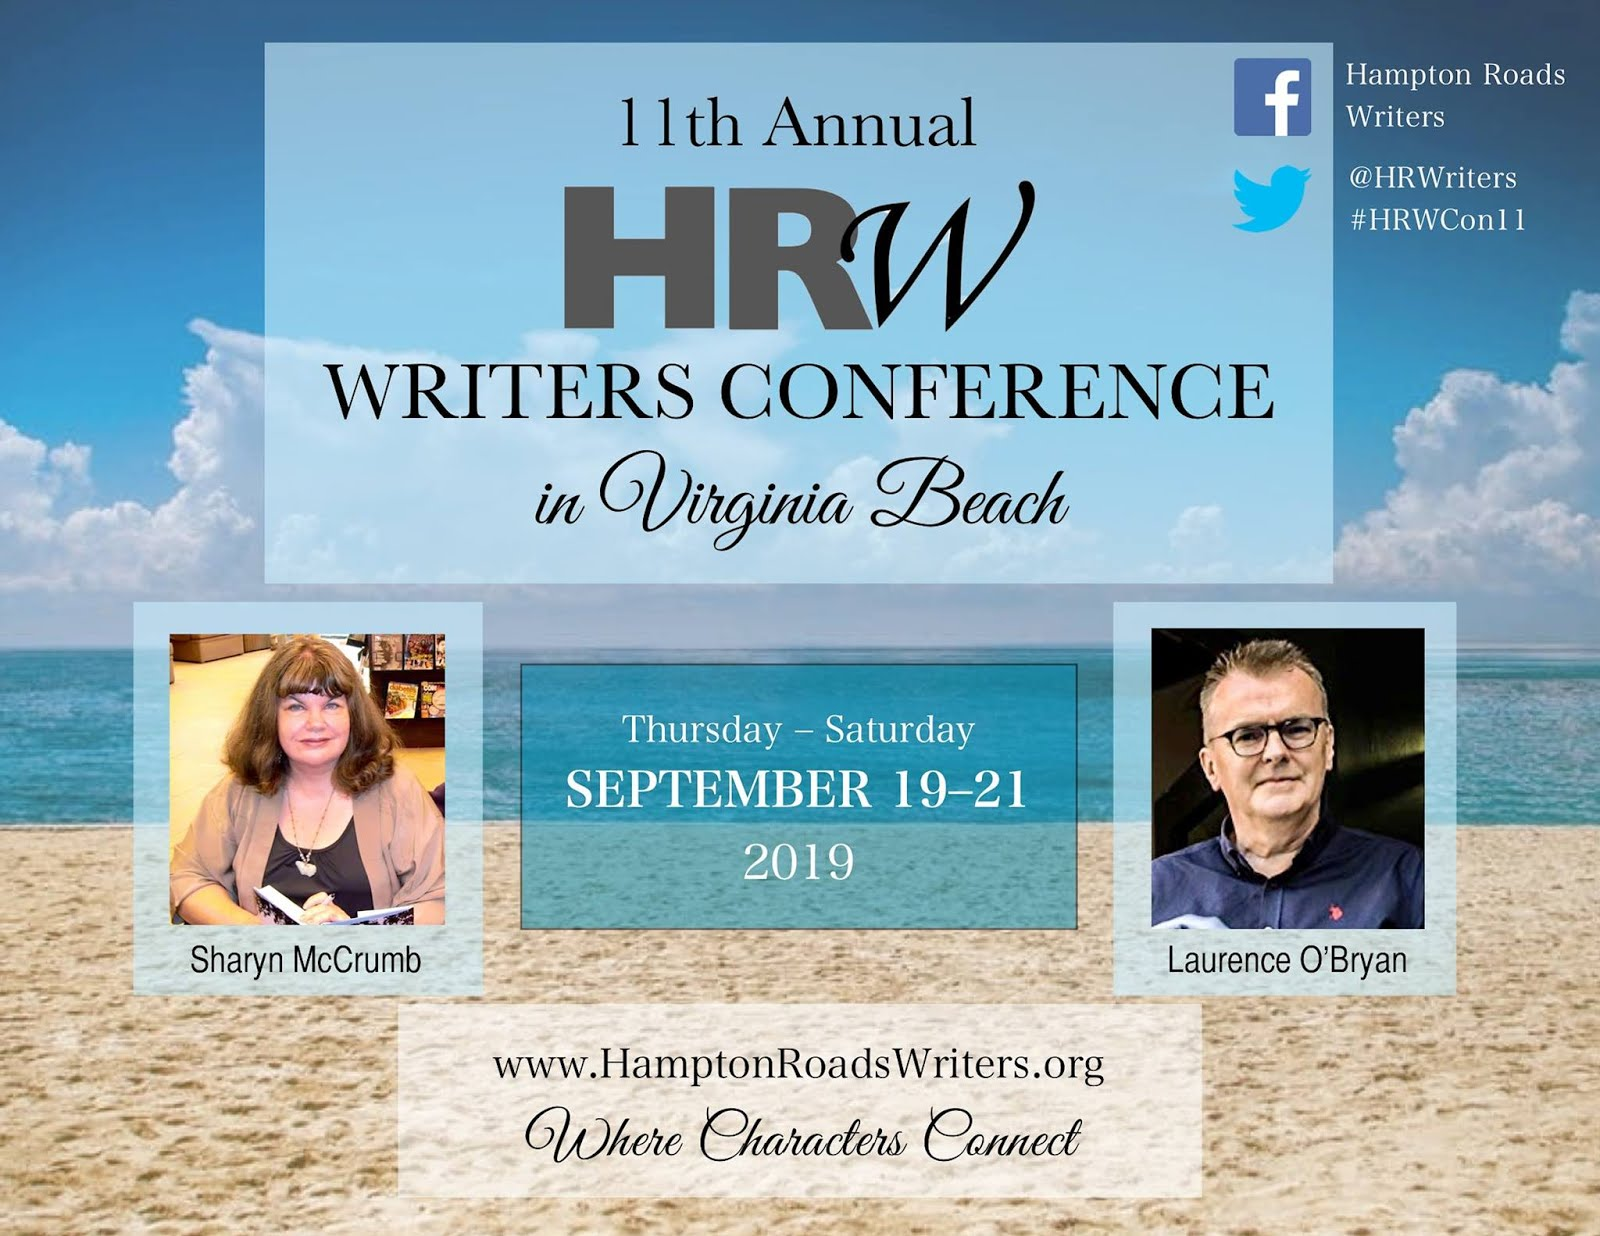 11th Annual HRW Writers Conference - September 19th - 21st